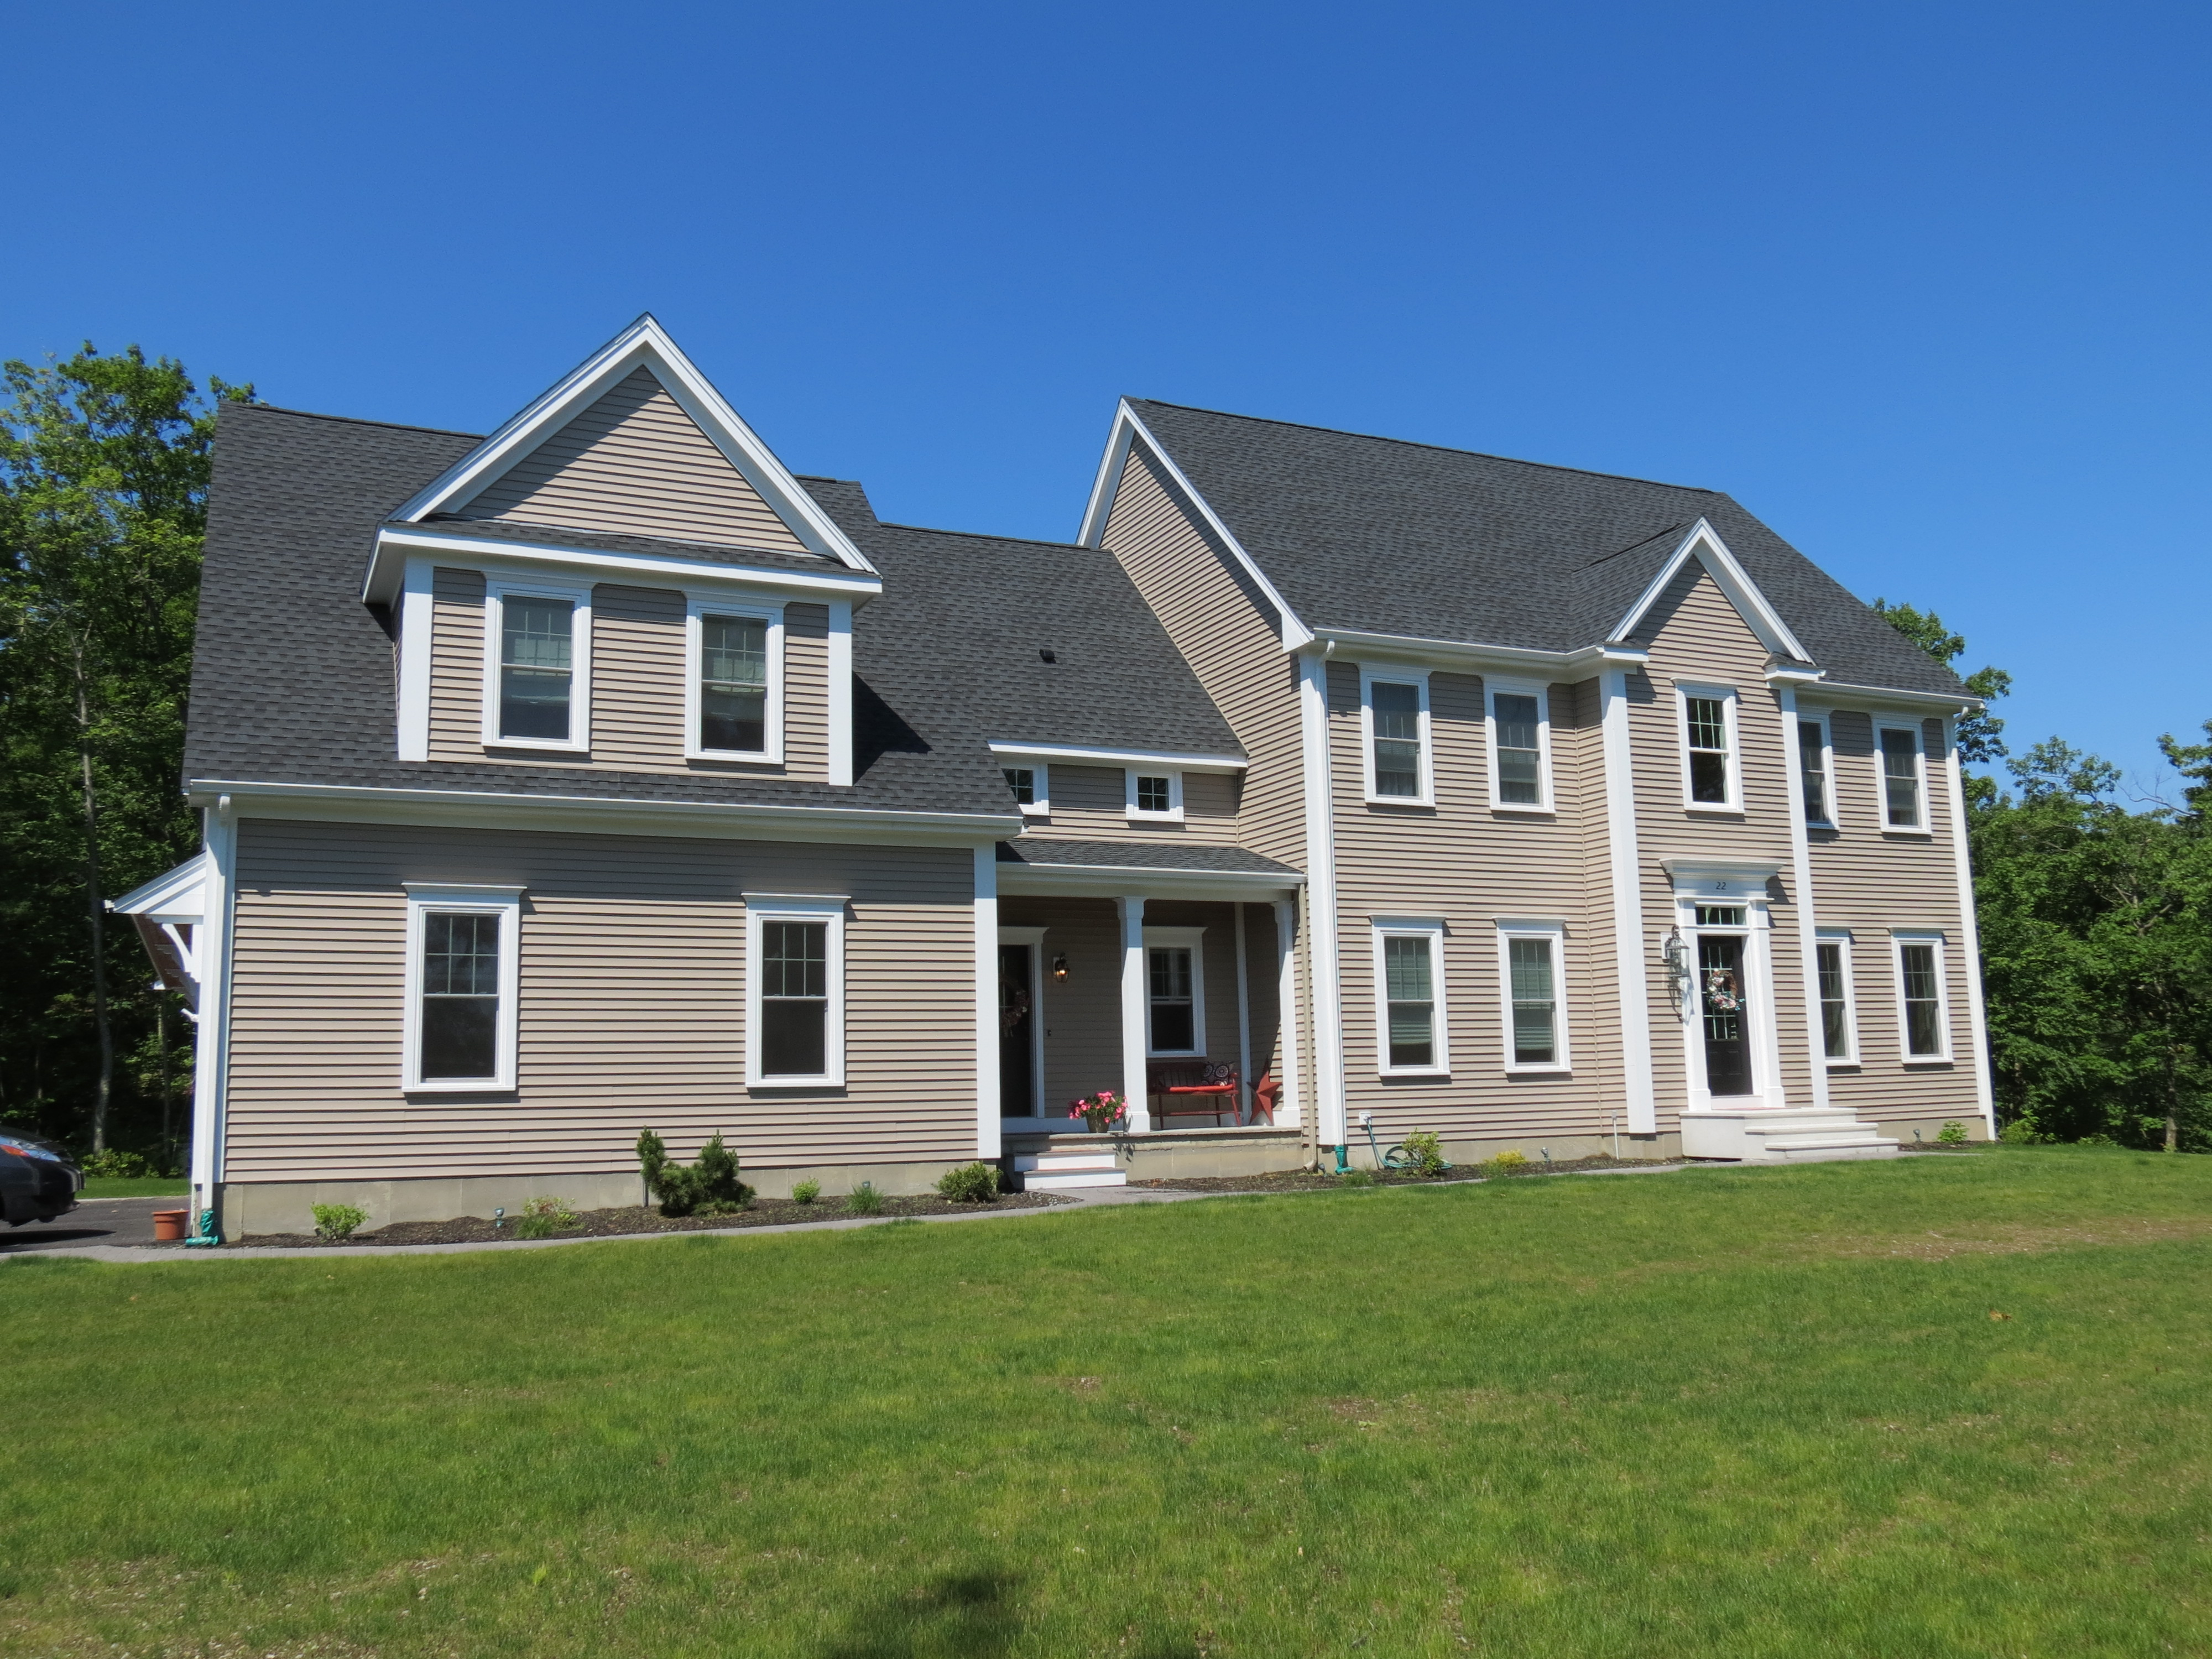 Home builders in salem ma for Building a house in ma